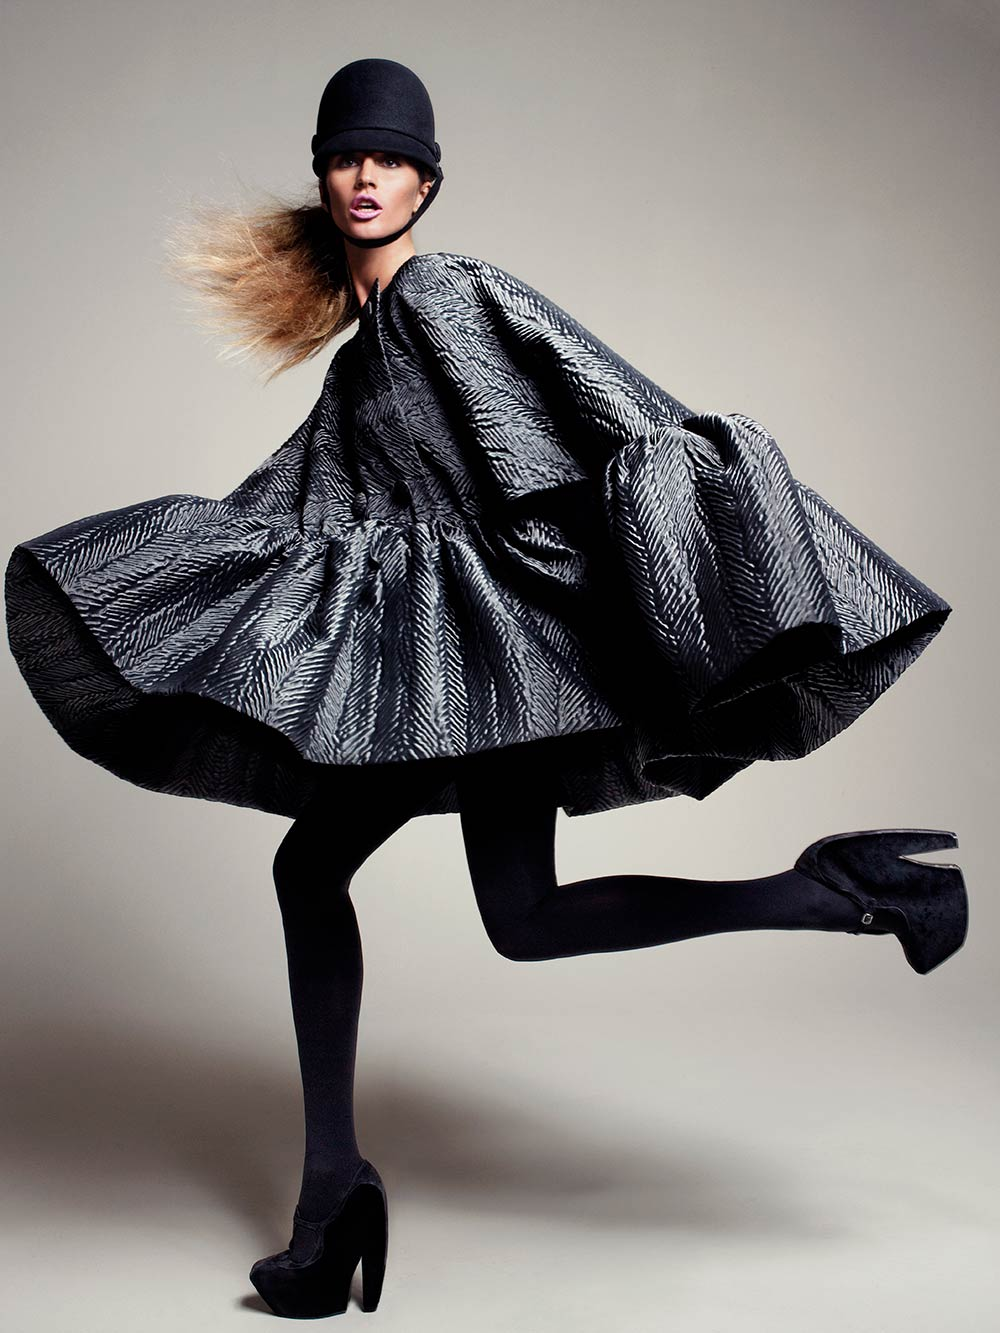 Model wearing grey cape by Nicolas Ghesquière for Balenciaga, 2006. Photograph by David Sims for Vogue © David Sims